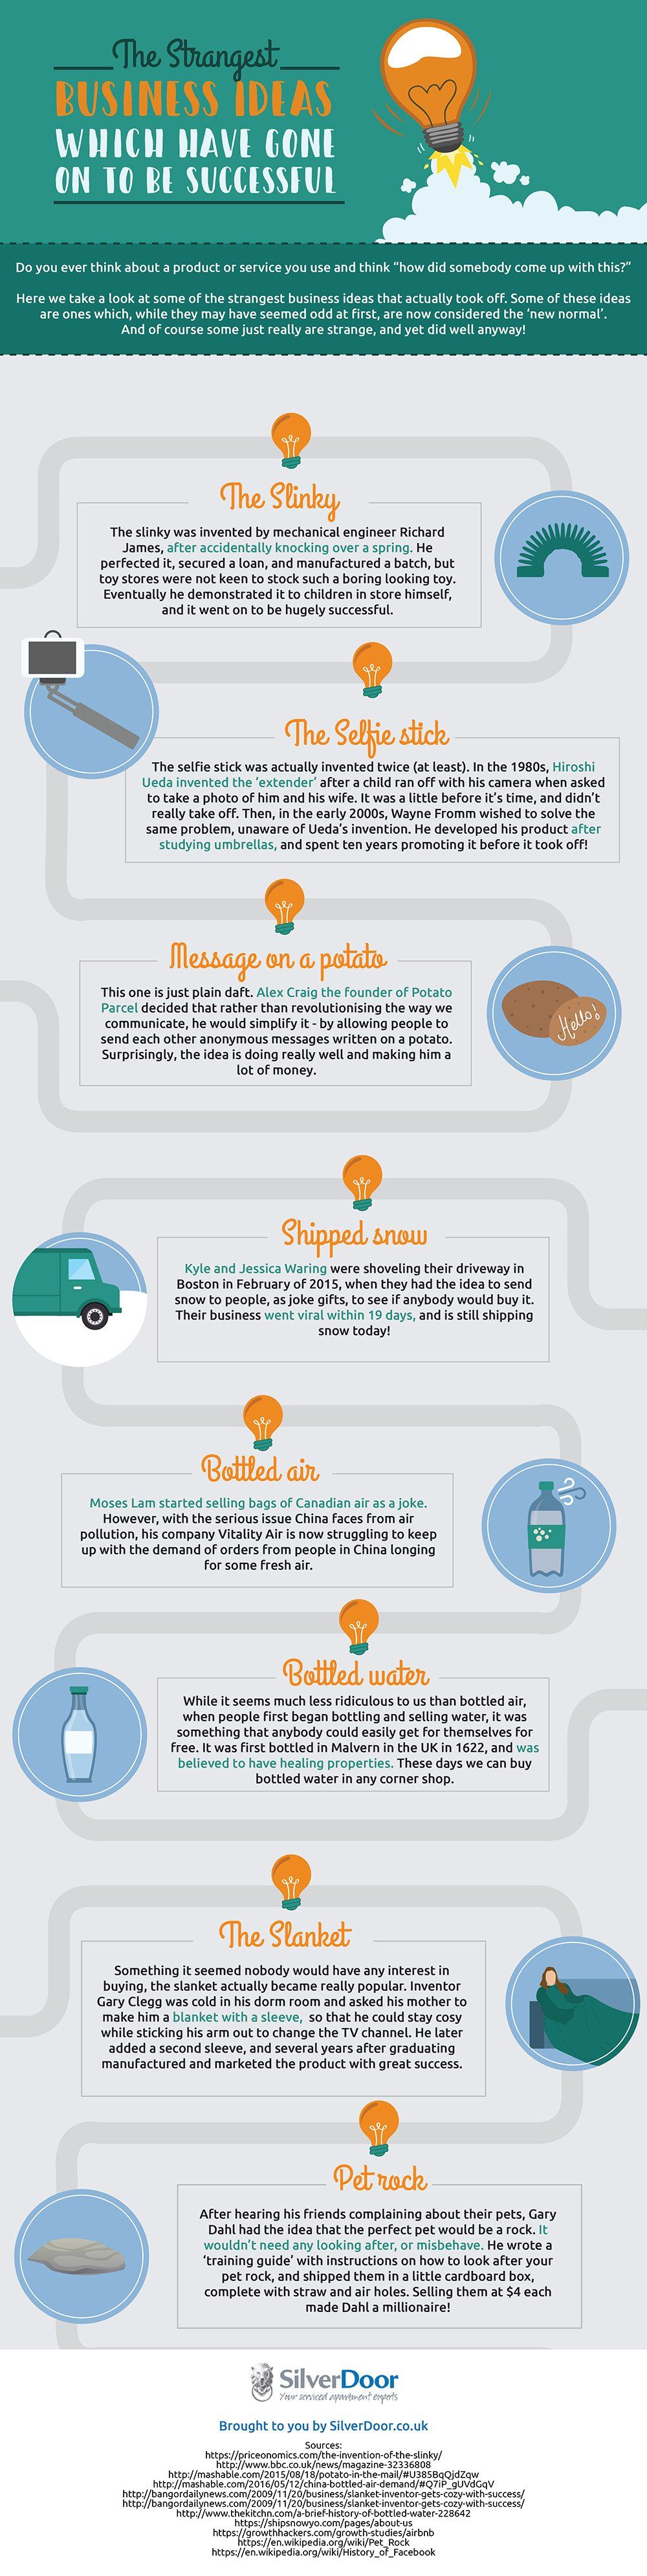 The Strangest Business Ideas Which Have Gone On To Be Successful #Infographic